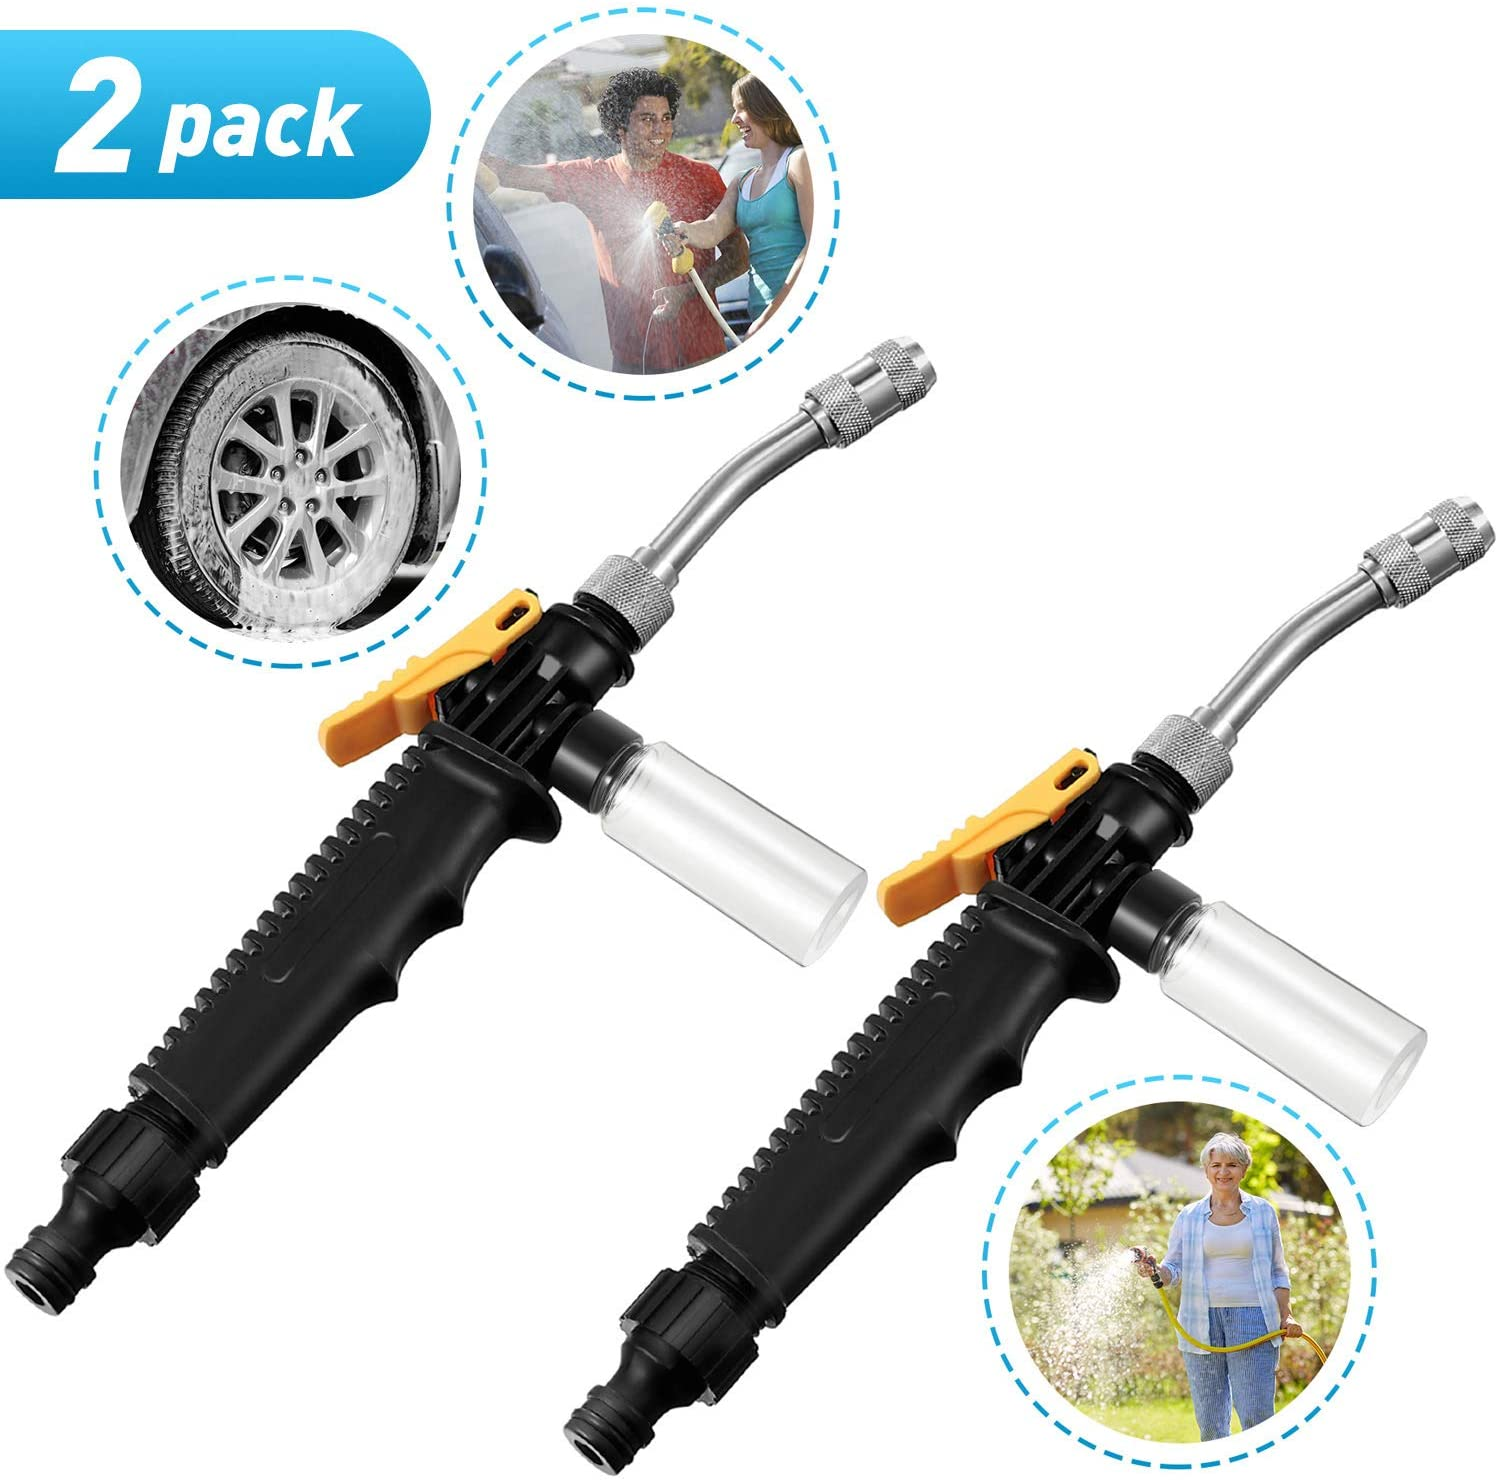 2 Pieces 2-in-1 High Pressure Washer 2.0 with Foaming Bottle High Impact Washing Wand Extendable Power Washing Wand Detachable Water Hose Nozzle for Wood Brick Concrete Plastic Glass Clean, 13.8 Inch